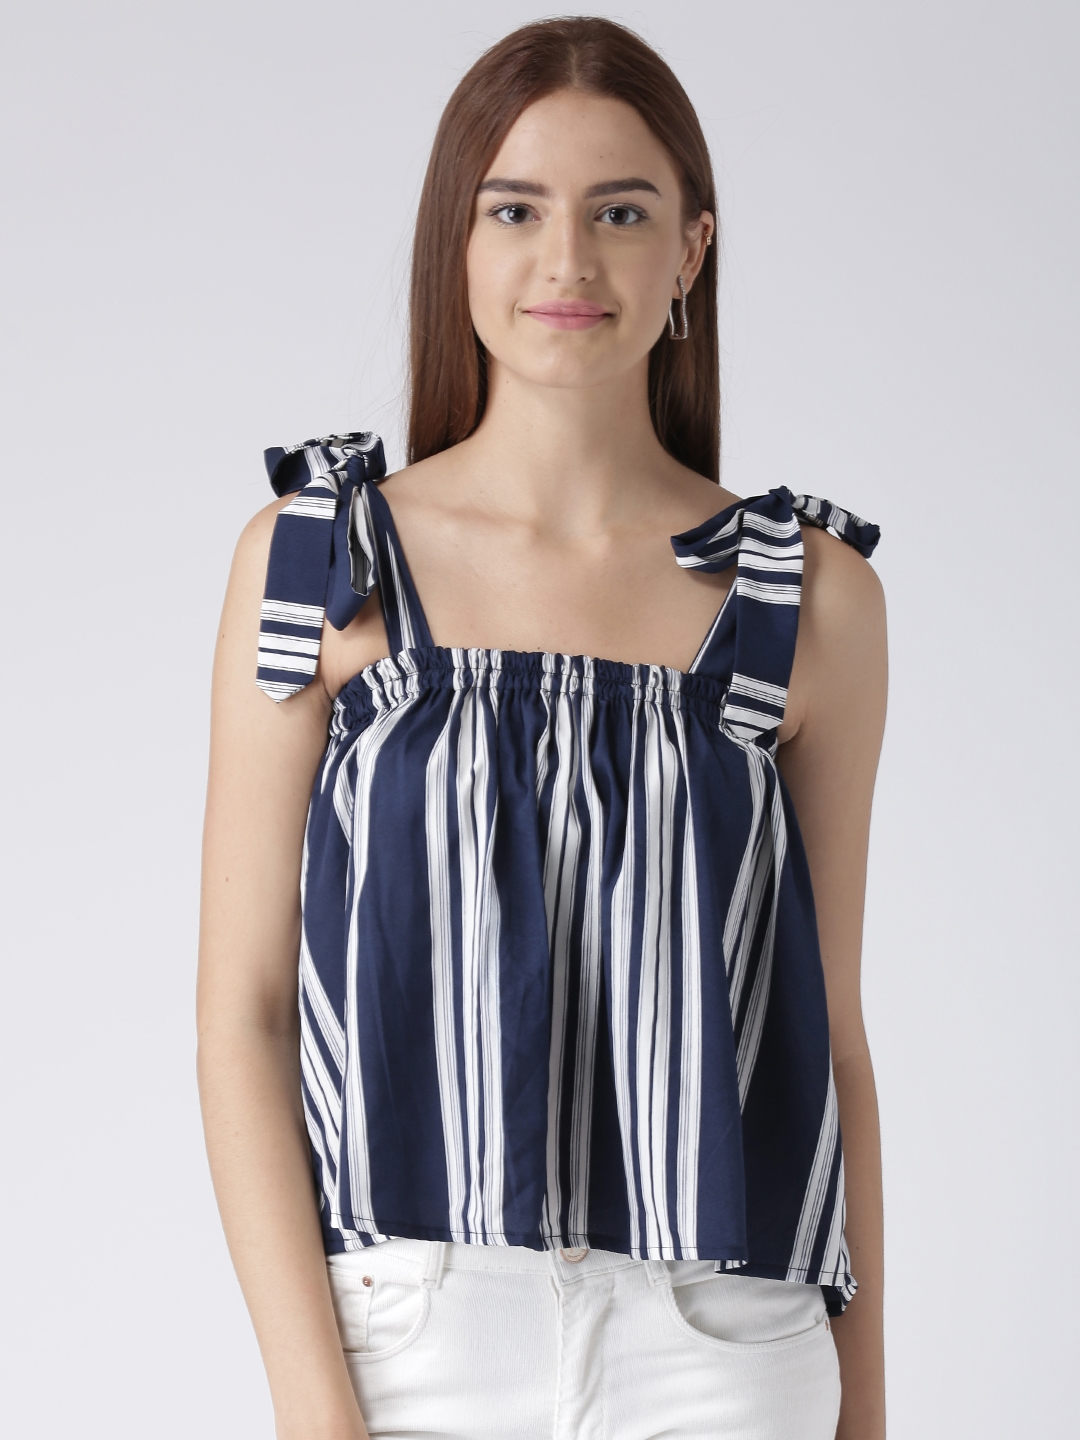 55736bf0ef618d Buy Pinwheel Women Navy Blue   White Striped A Line Top - Tops for ...